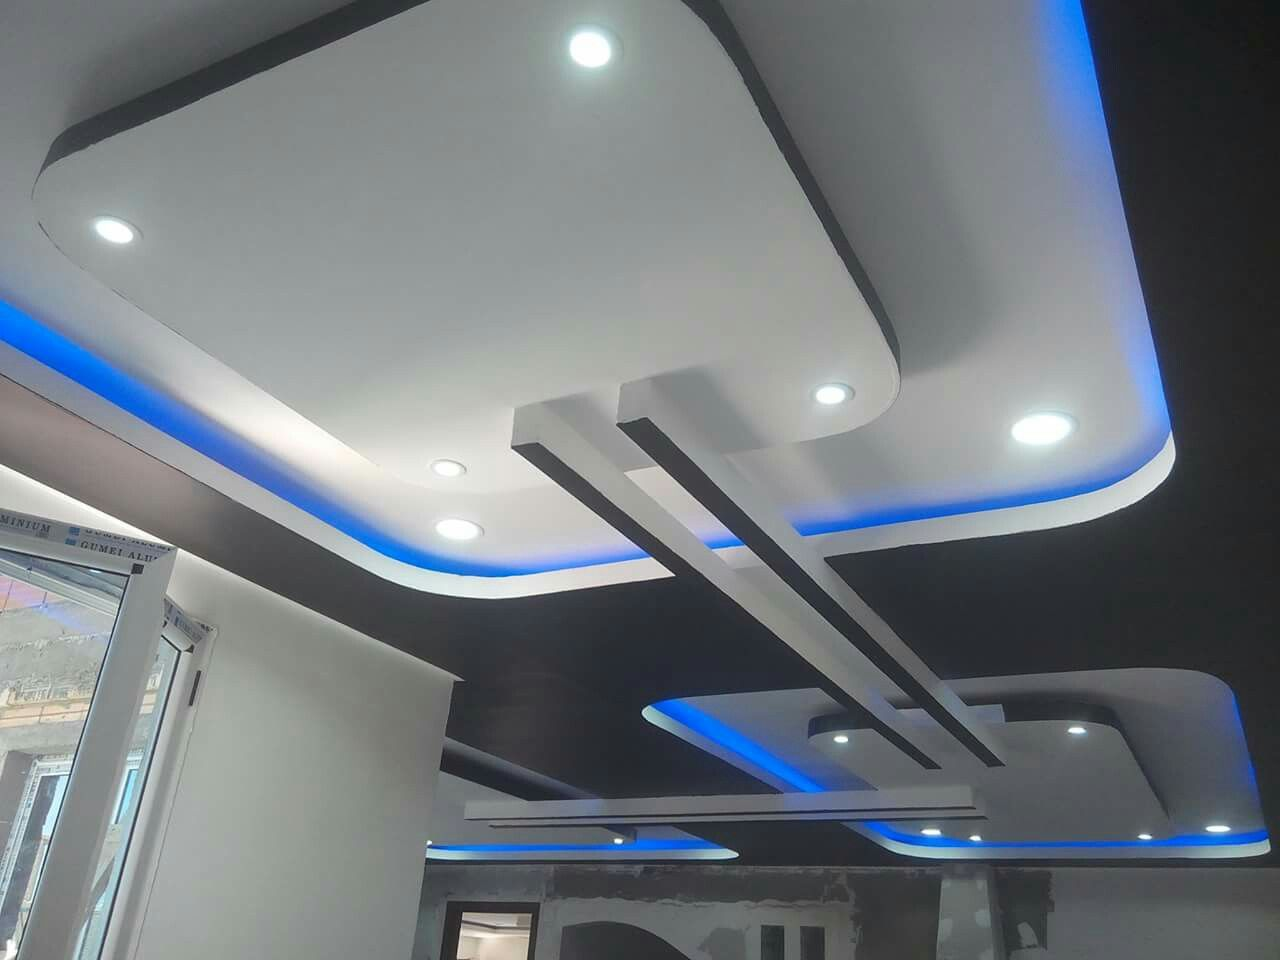 Modern Ceiling Design, False Ceiling Design, False Ceiling Ideas, Gypsum  Ceiling, Plasterboard, Pop Design, Ceilings, Cities, Modern Decoration